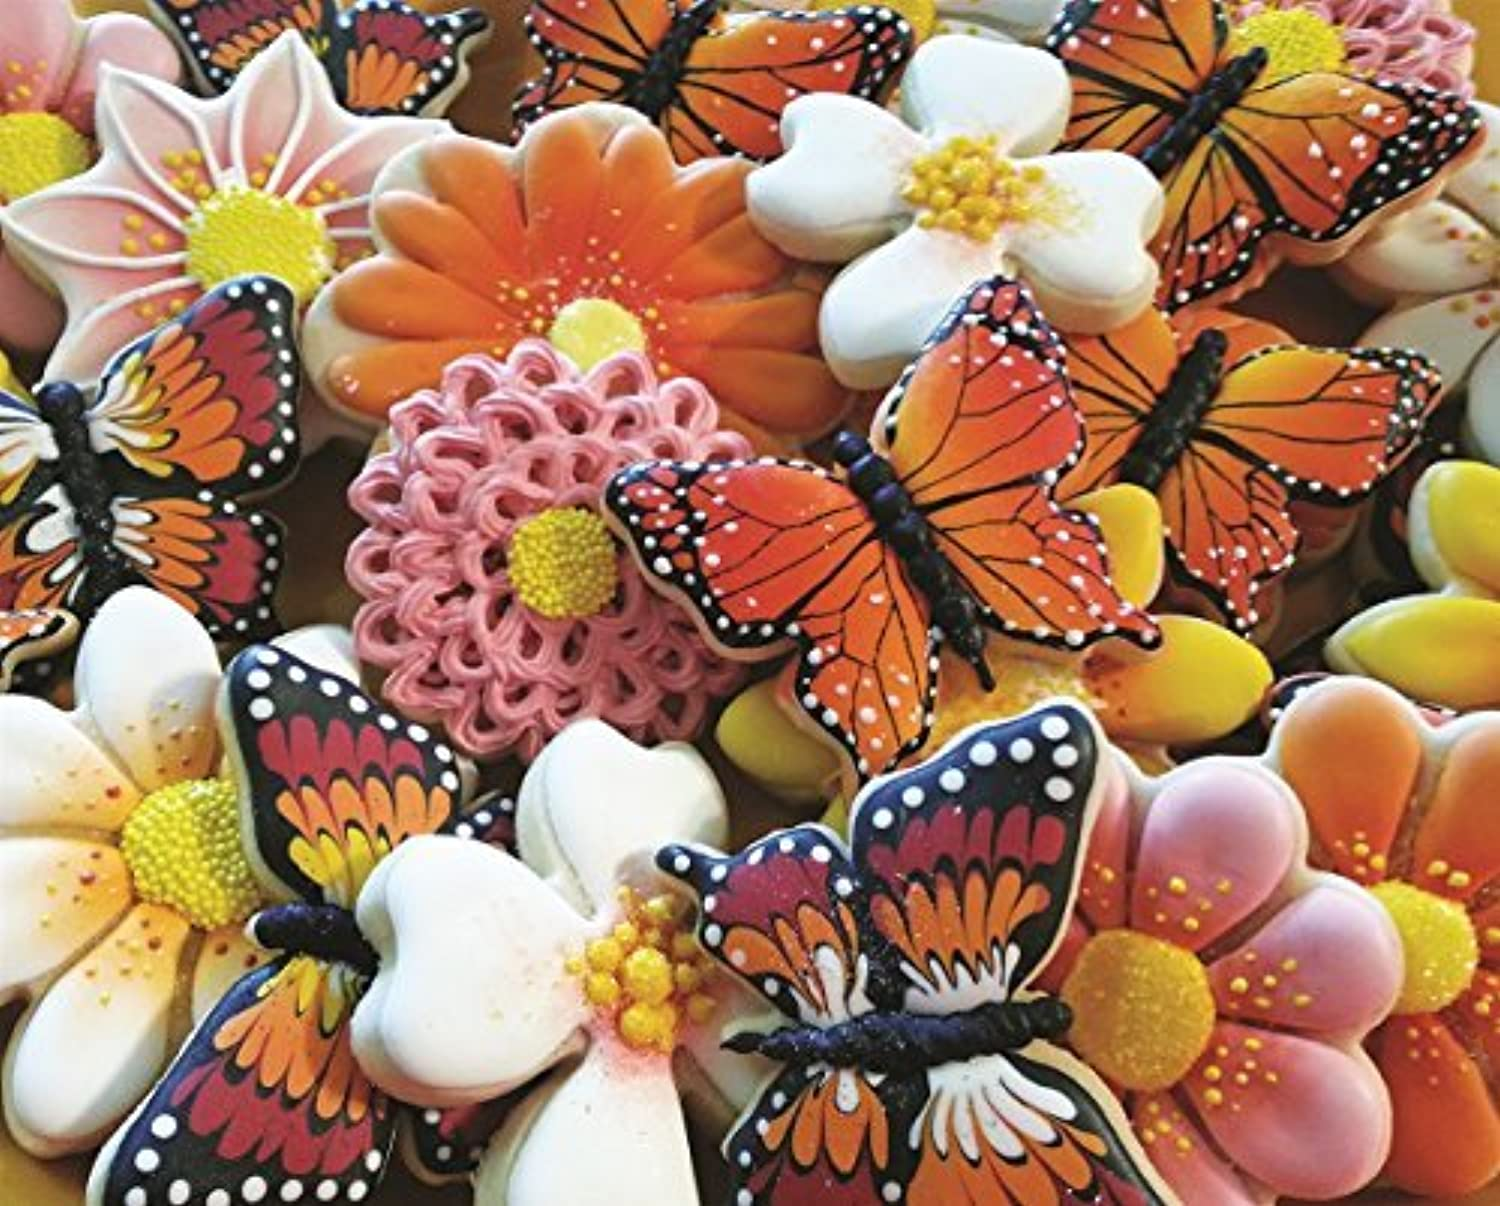 Springbok Puzzles Butterfly Cookies Jigsaw Puzzle (1000 Piece) by Springbok